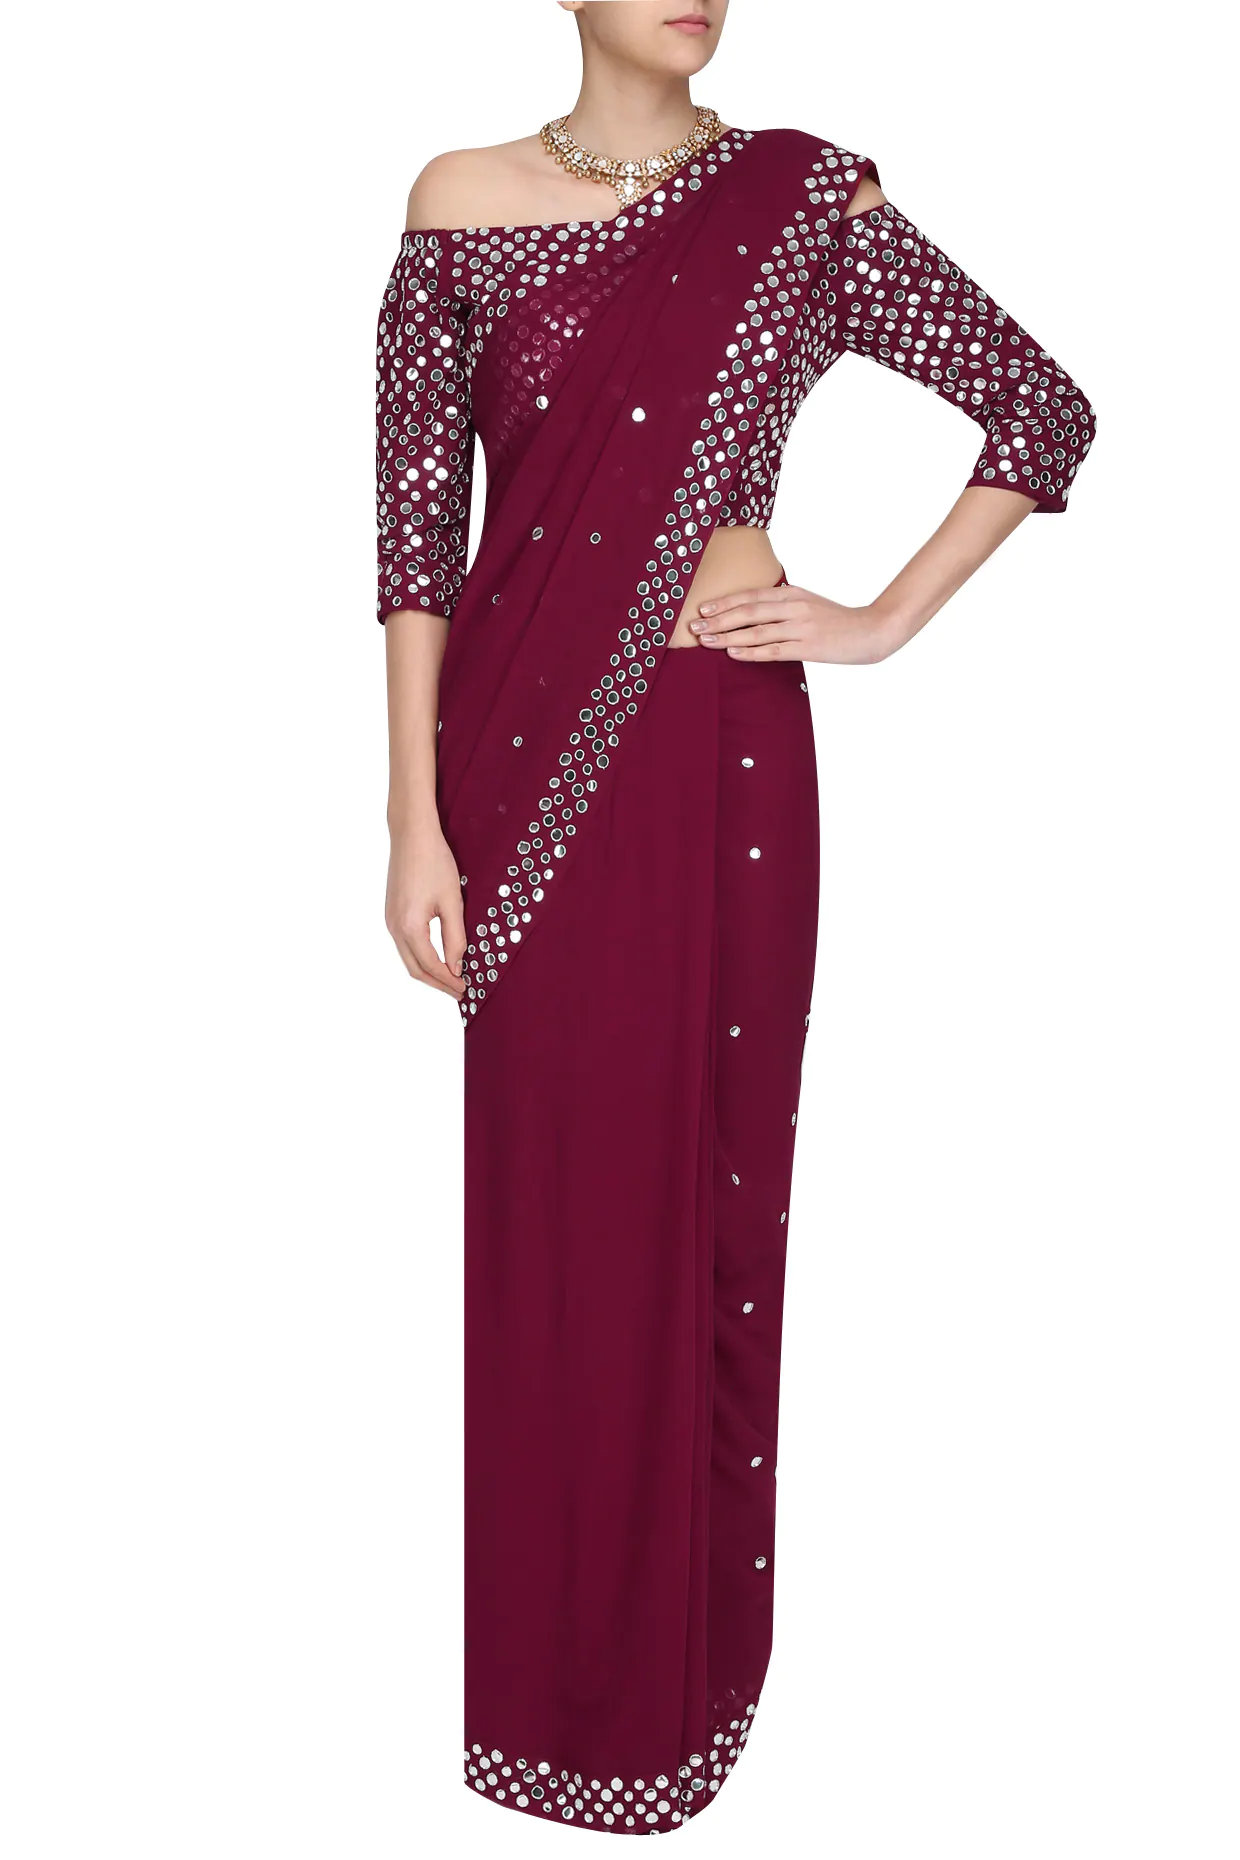 Maroon Hand Embroidered Saree with Off Shoulder Blouse